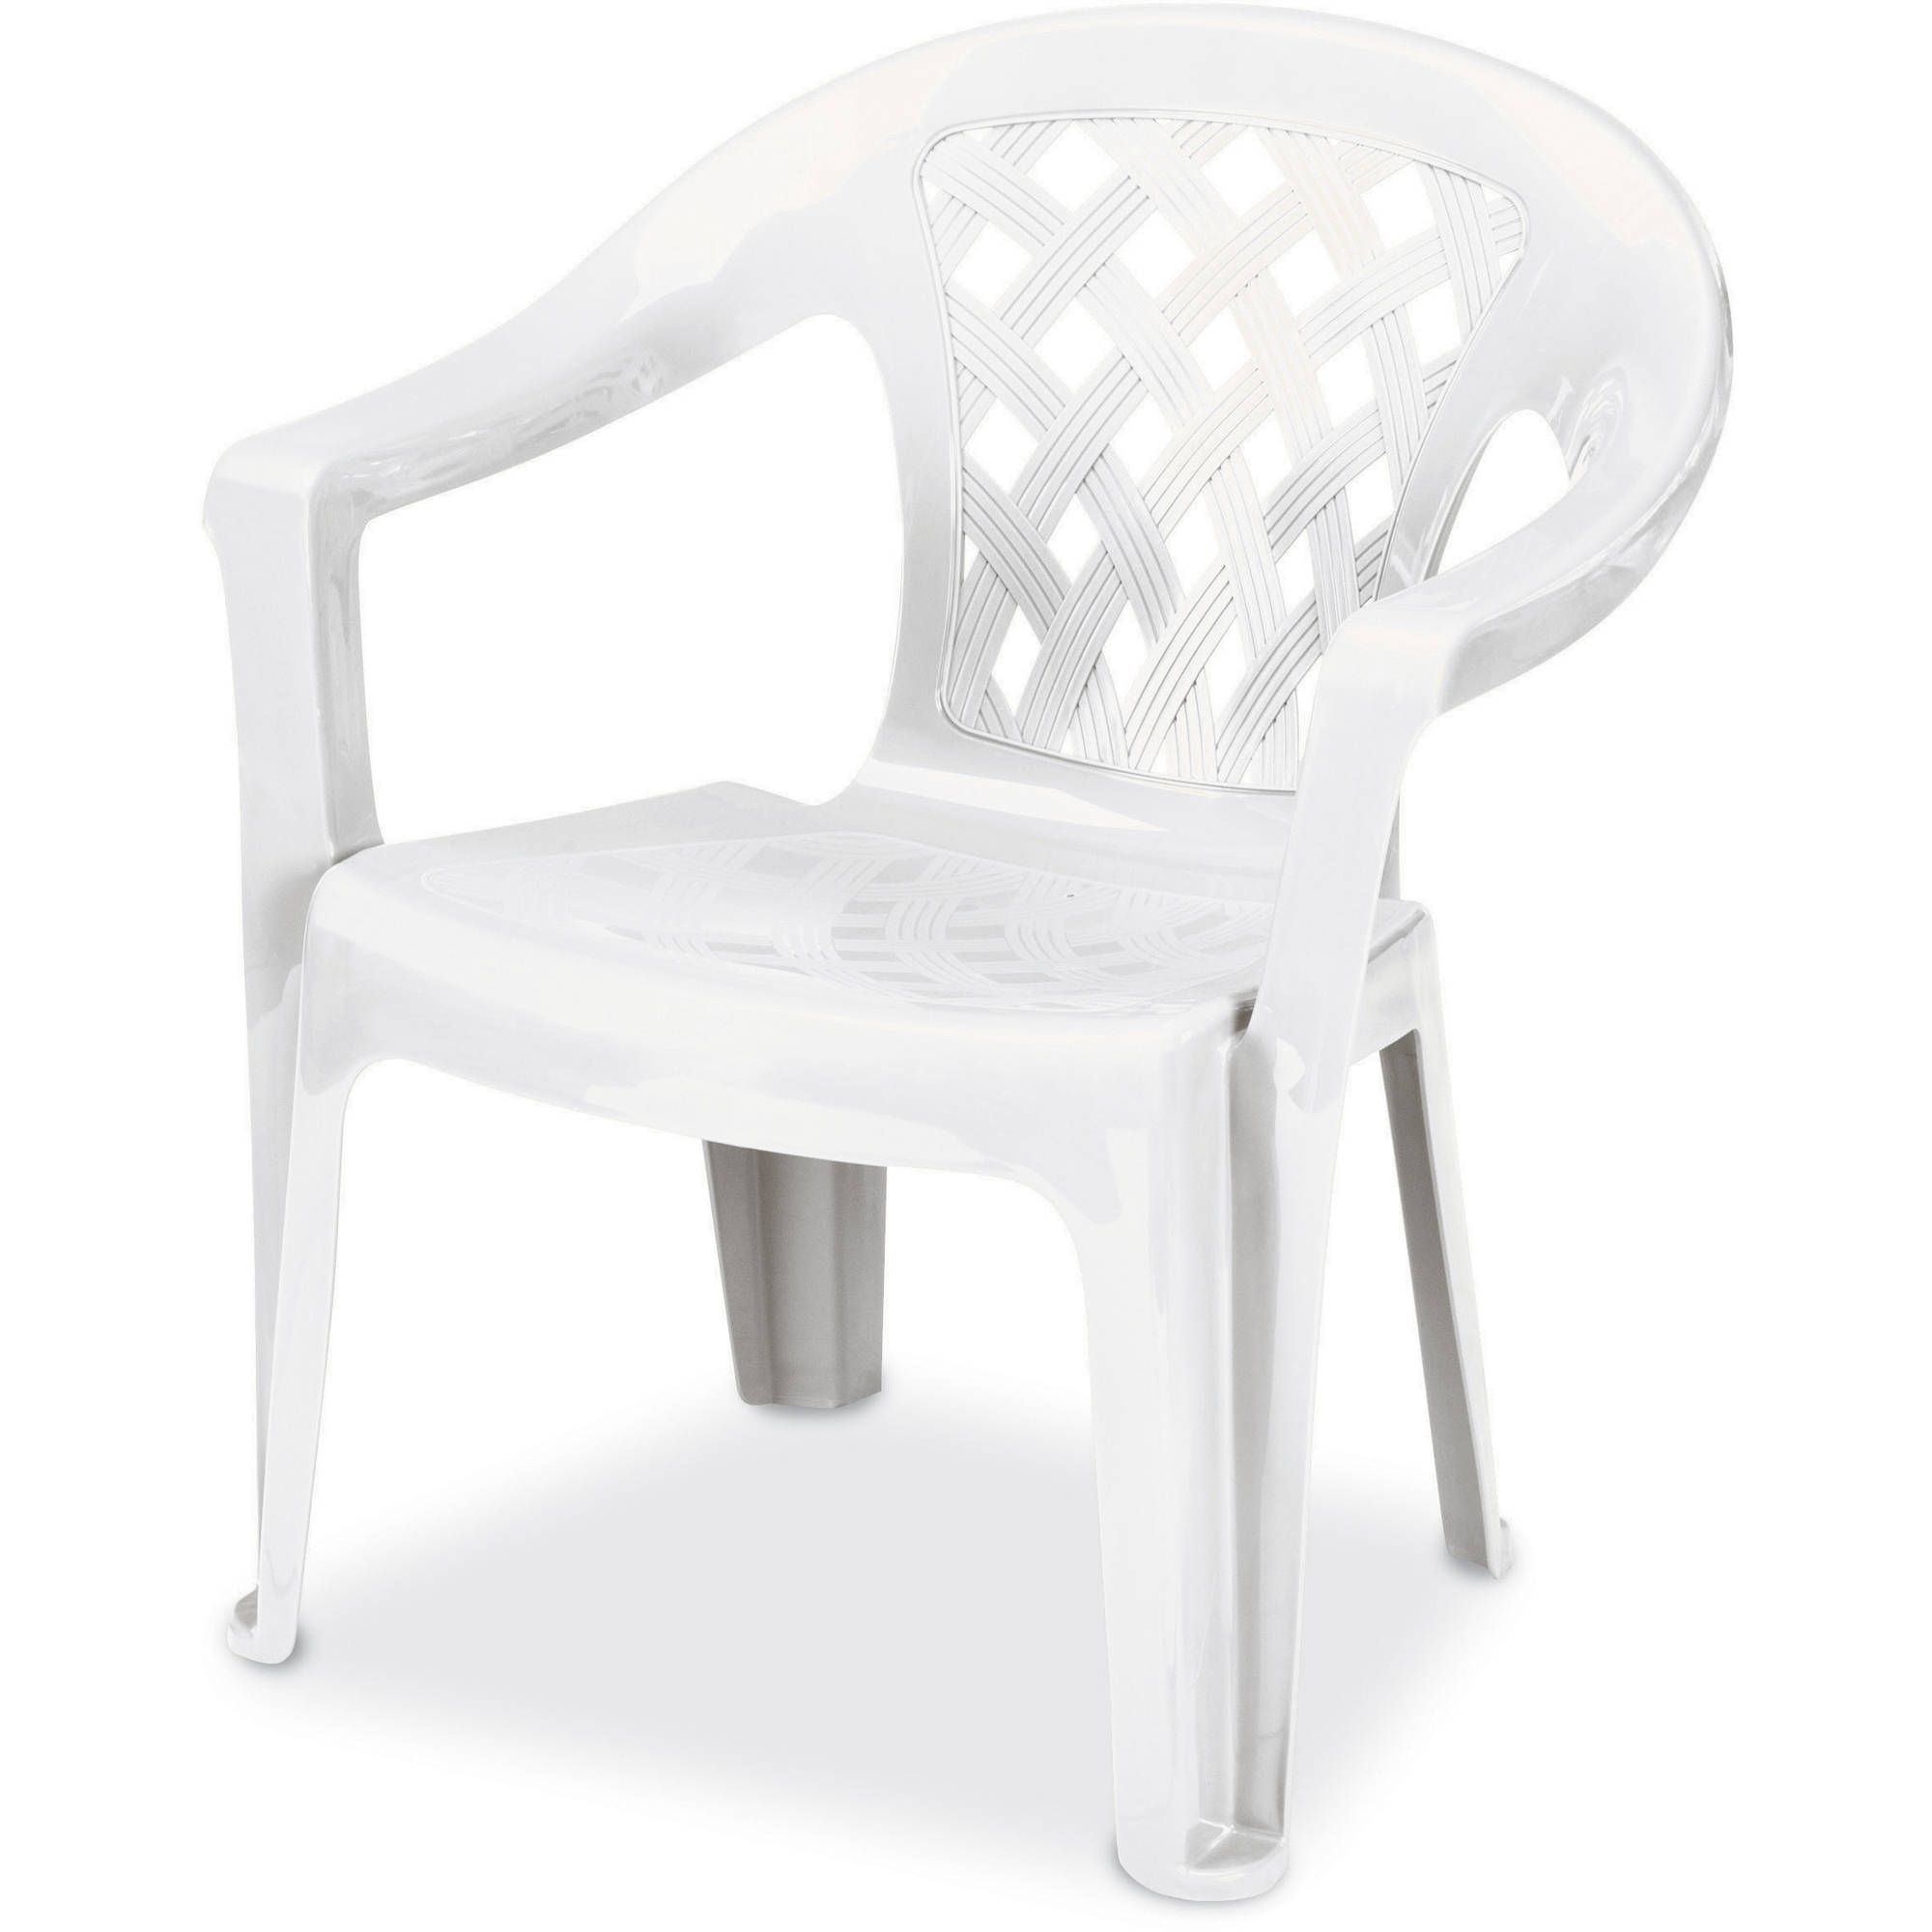 Elegant US Leisure Resin Big And Tall Lowback Chair, White Part 21